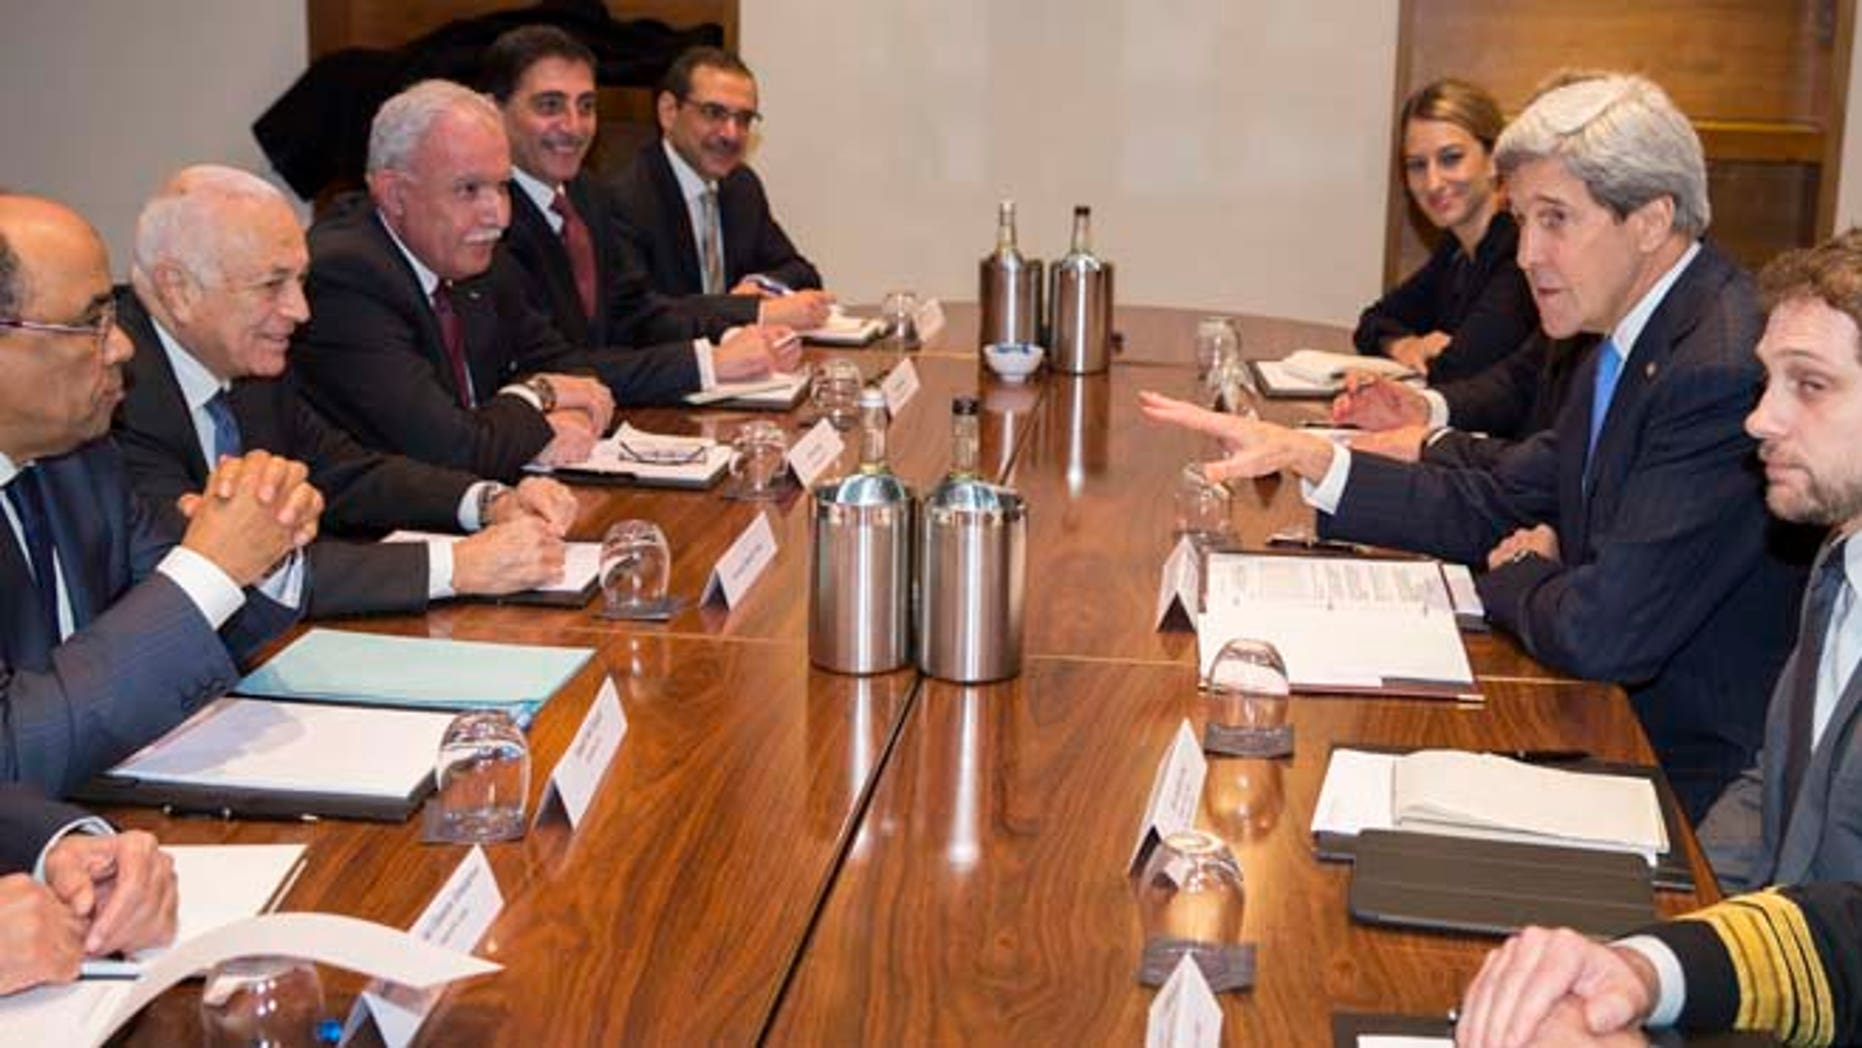 US Secretary of State John Kerry, second right, meets with Arab League secretary general Nabil El-Arabi, second from left, on Tuesday, Dec. 16, 2014, in London.